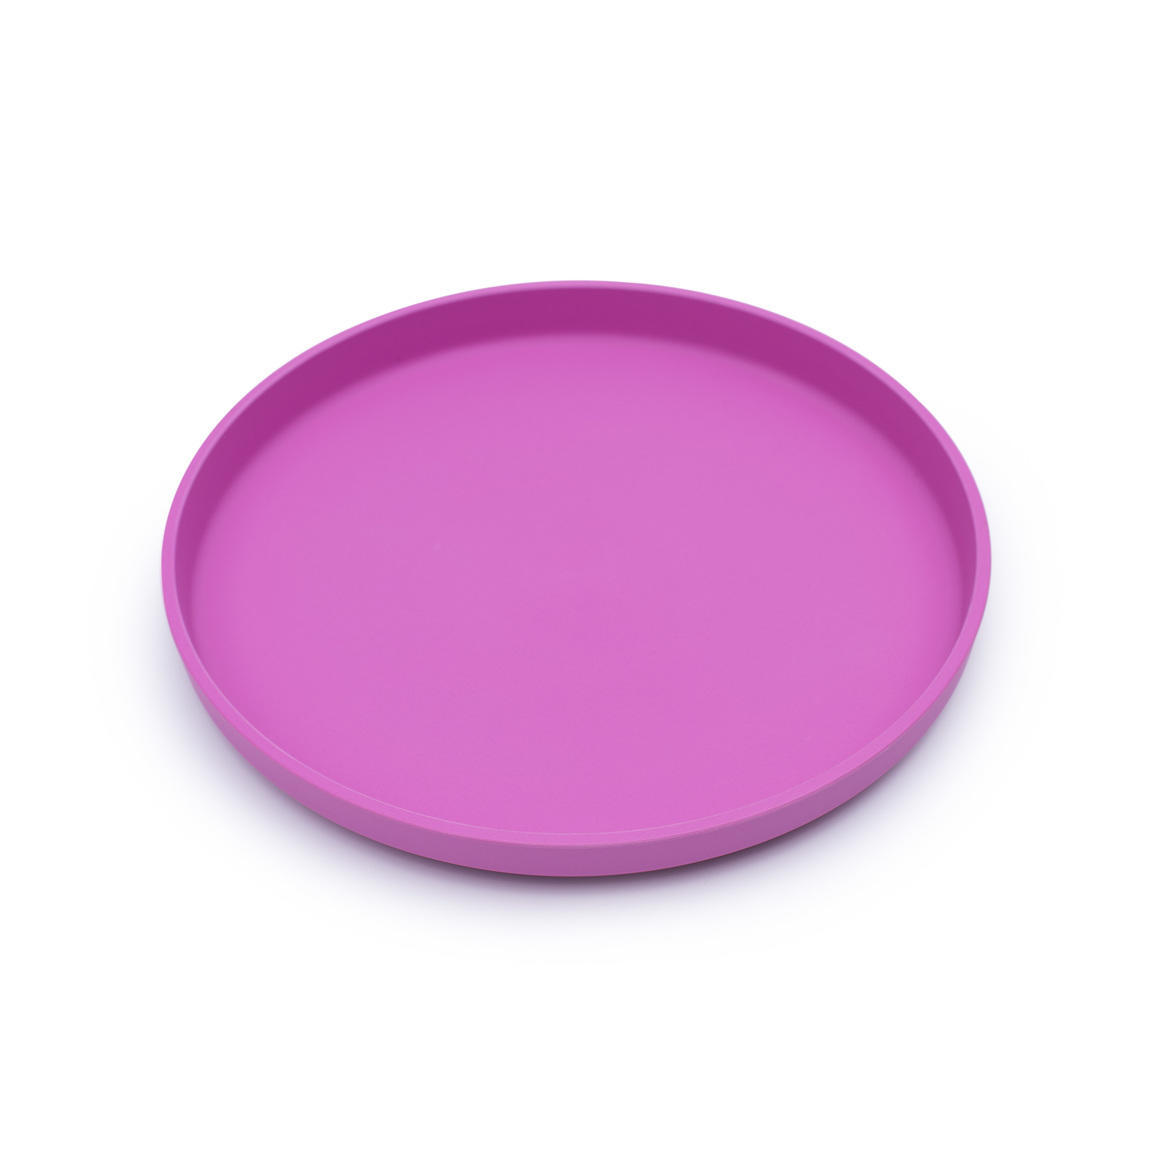 Plant-Based Plate - Pink   Trada Marketplace